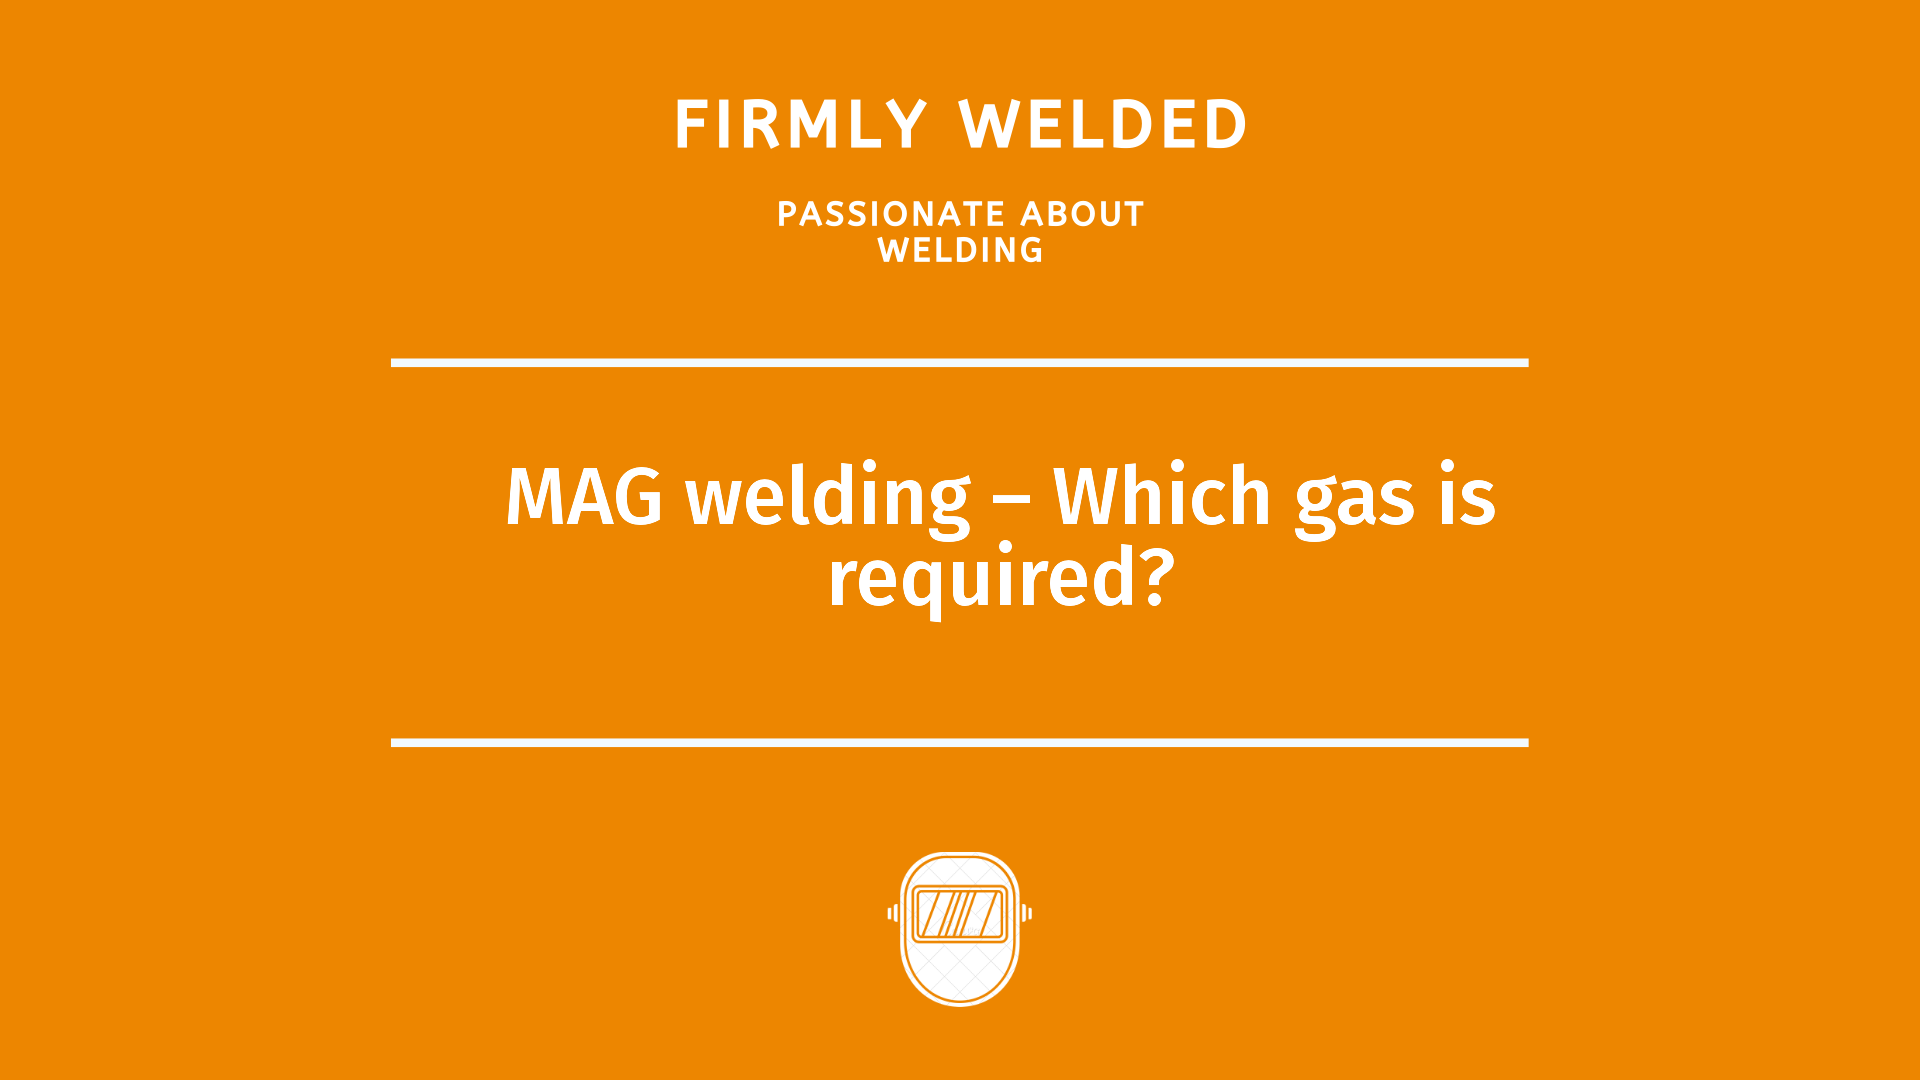 MAG welding – Which gas is required?